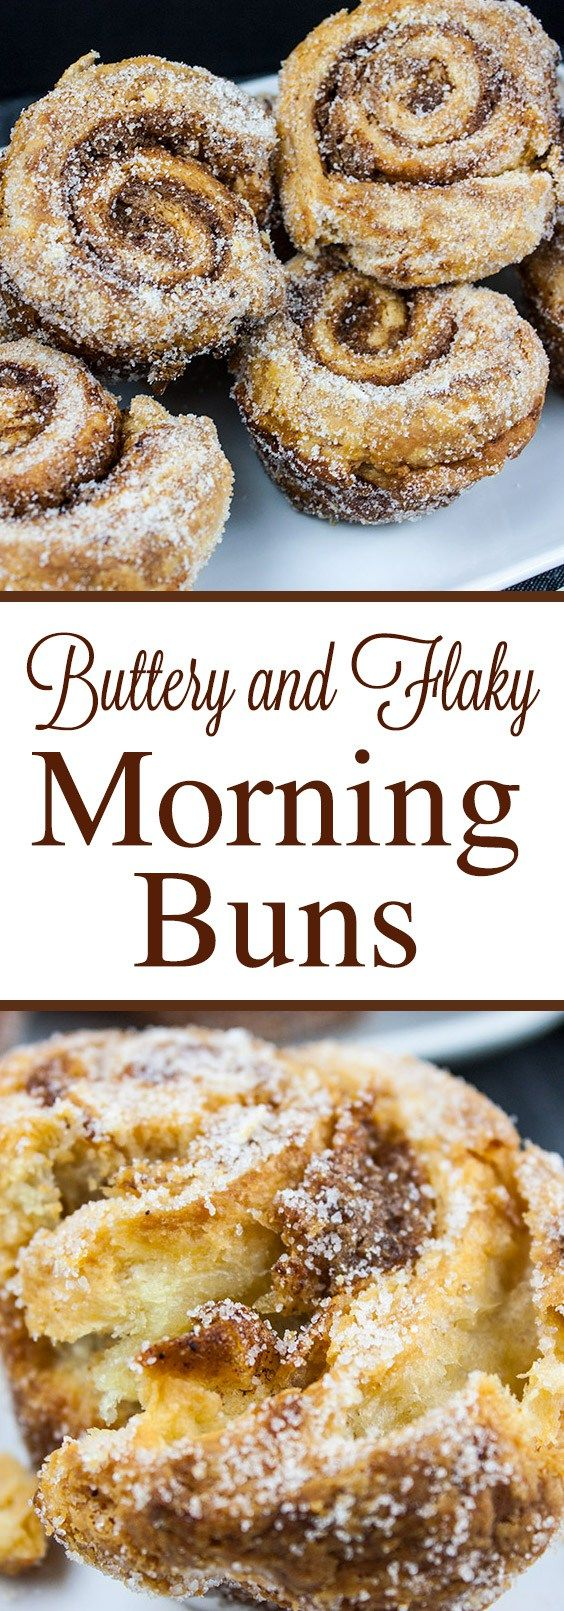 Morning Buns - Crispy outer layers, soft buttery inner layers of pastry dough sprinkled with a cinnamon orange filling that's perfect for Christmas or Thanksgiving morning.